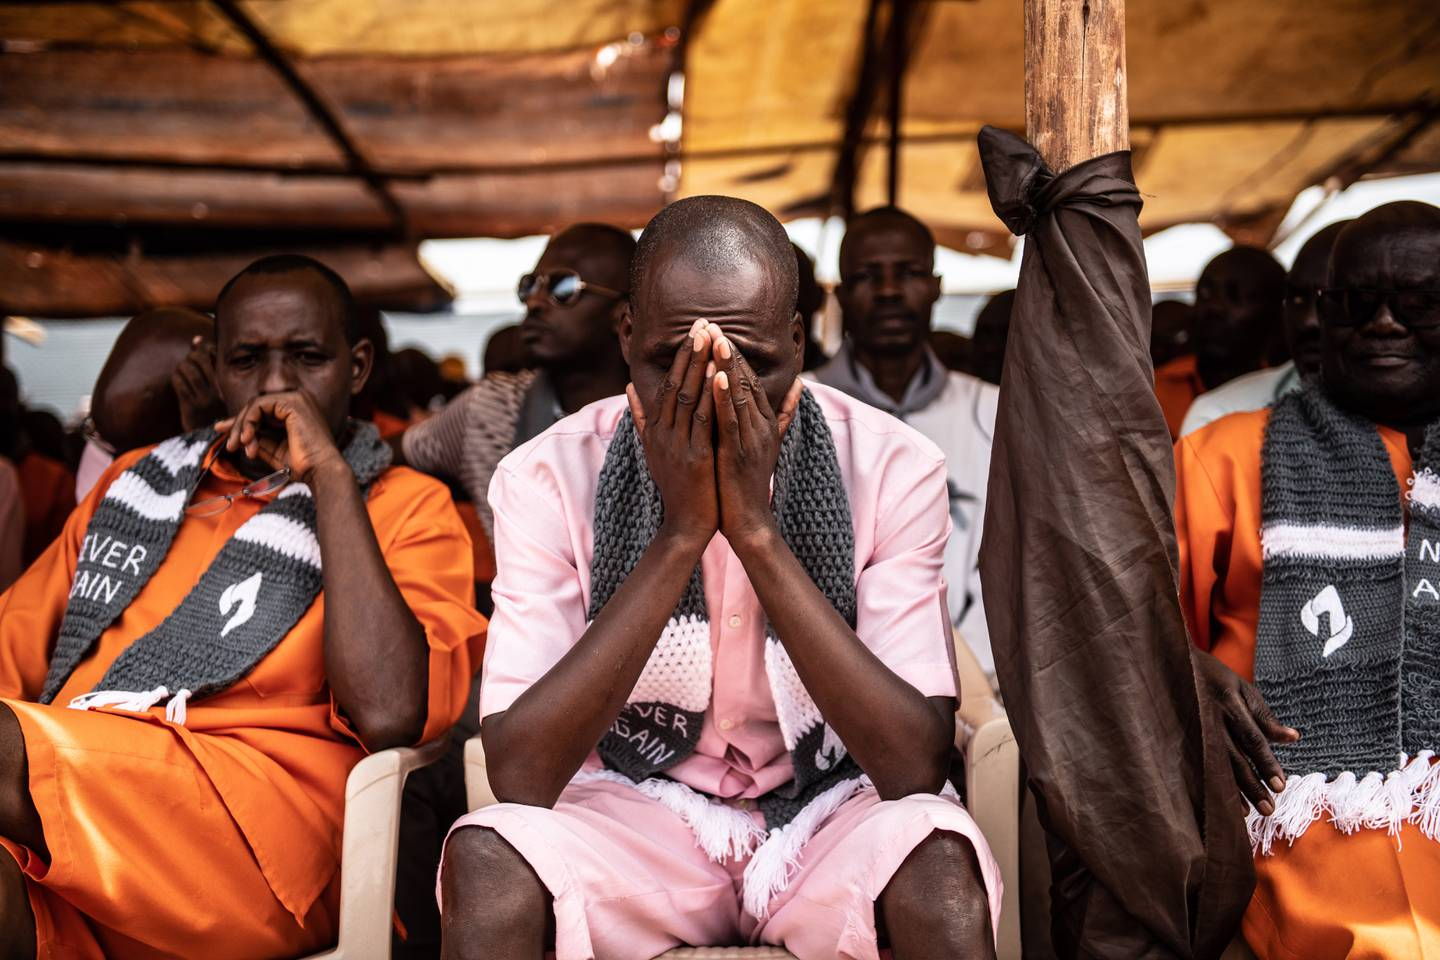 KIGALI, RWANDA - APRIL 07: Prisoners listen during a Genocide commemoration ceremony on April 07, 2019 at Nyarugenge Prison in Kigali, Rwanda. The prison holds many perpetrators of the genocide still serving their sentences after being found guilty. The country is preparing to commemorate the 25th anniversary of the genocide in which 800,000 Tutsis and moderate Hutus were killed over a 100-day period.  (Photo by Andrew Renneisen/Getty Images)